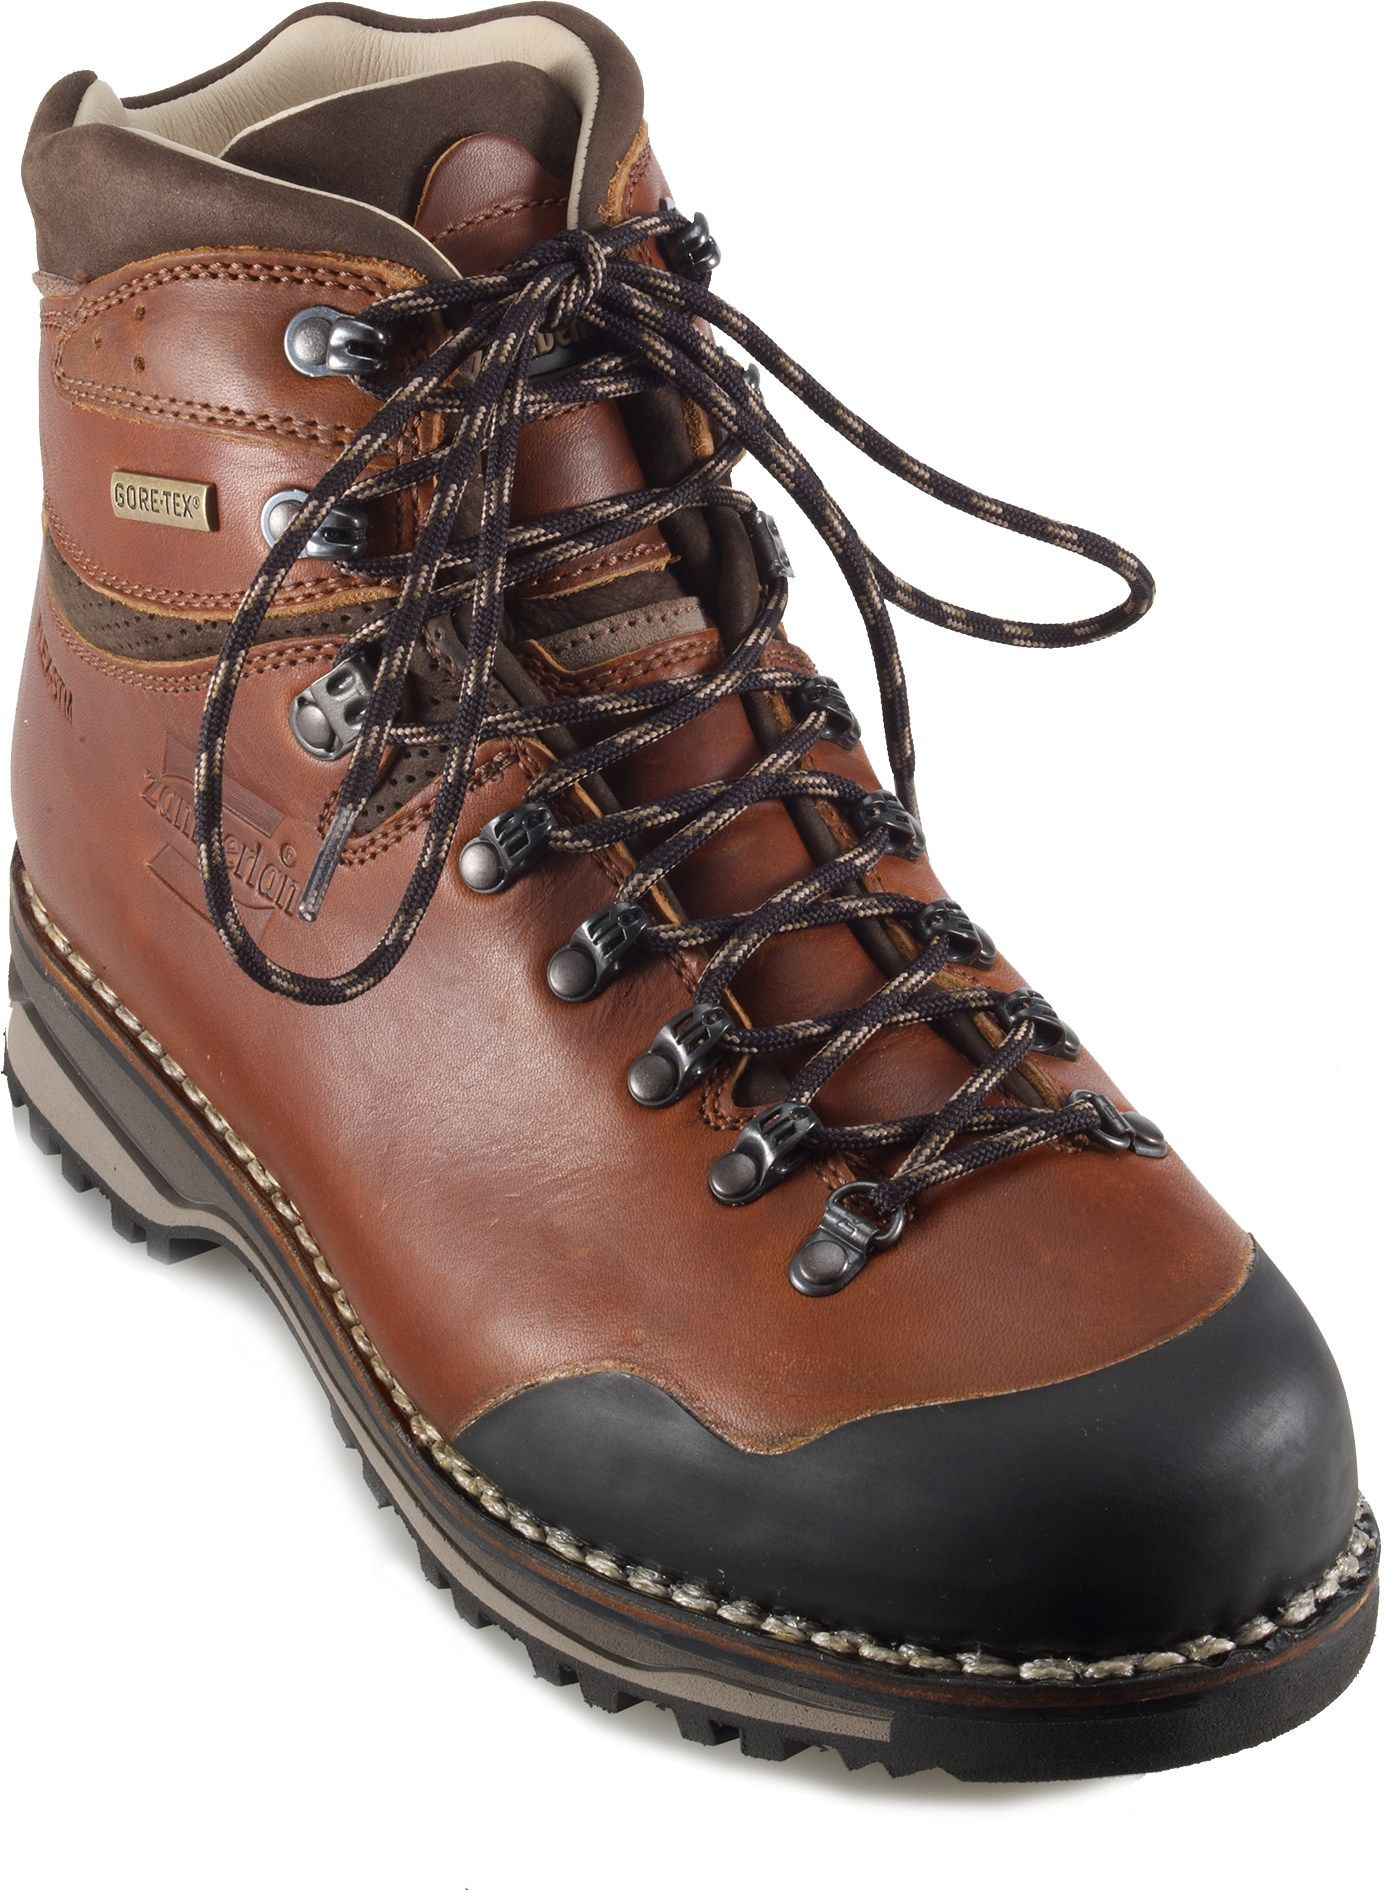 4f2ae94838e 1025 Tofane NW GT RR Hiking Boots - Men's in 2019 | Matt | Hiking ...